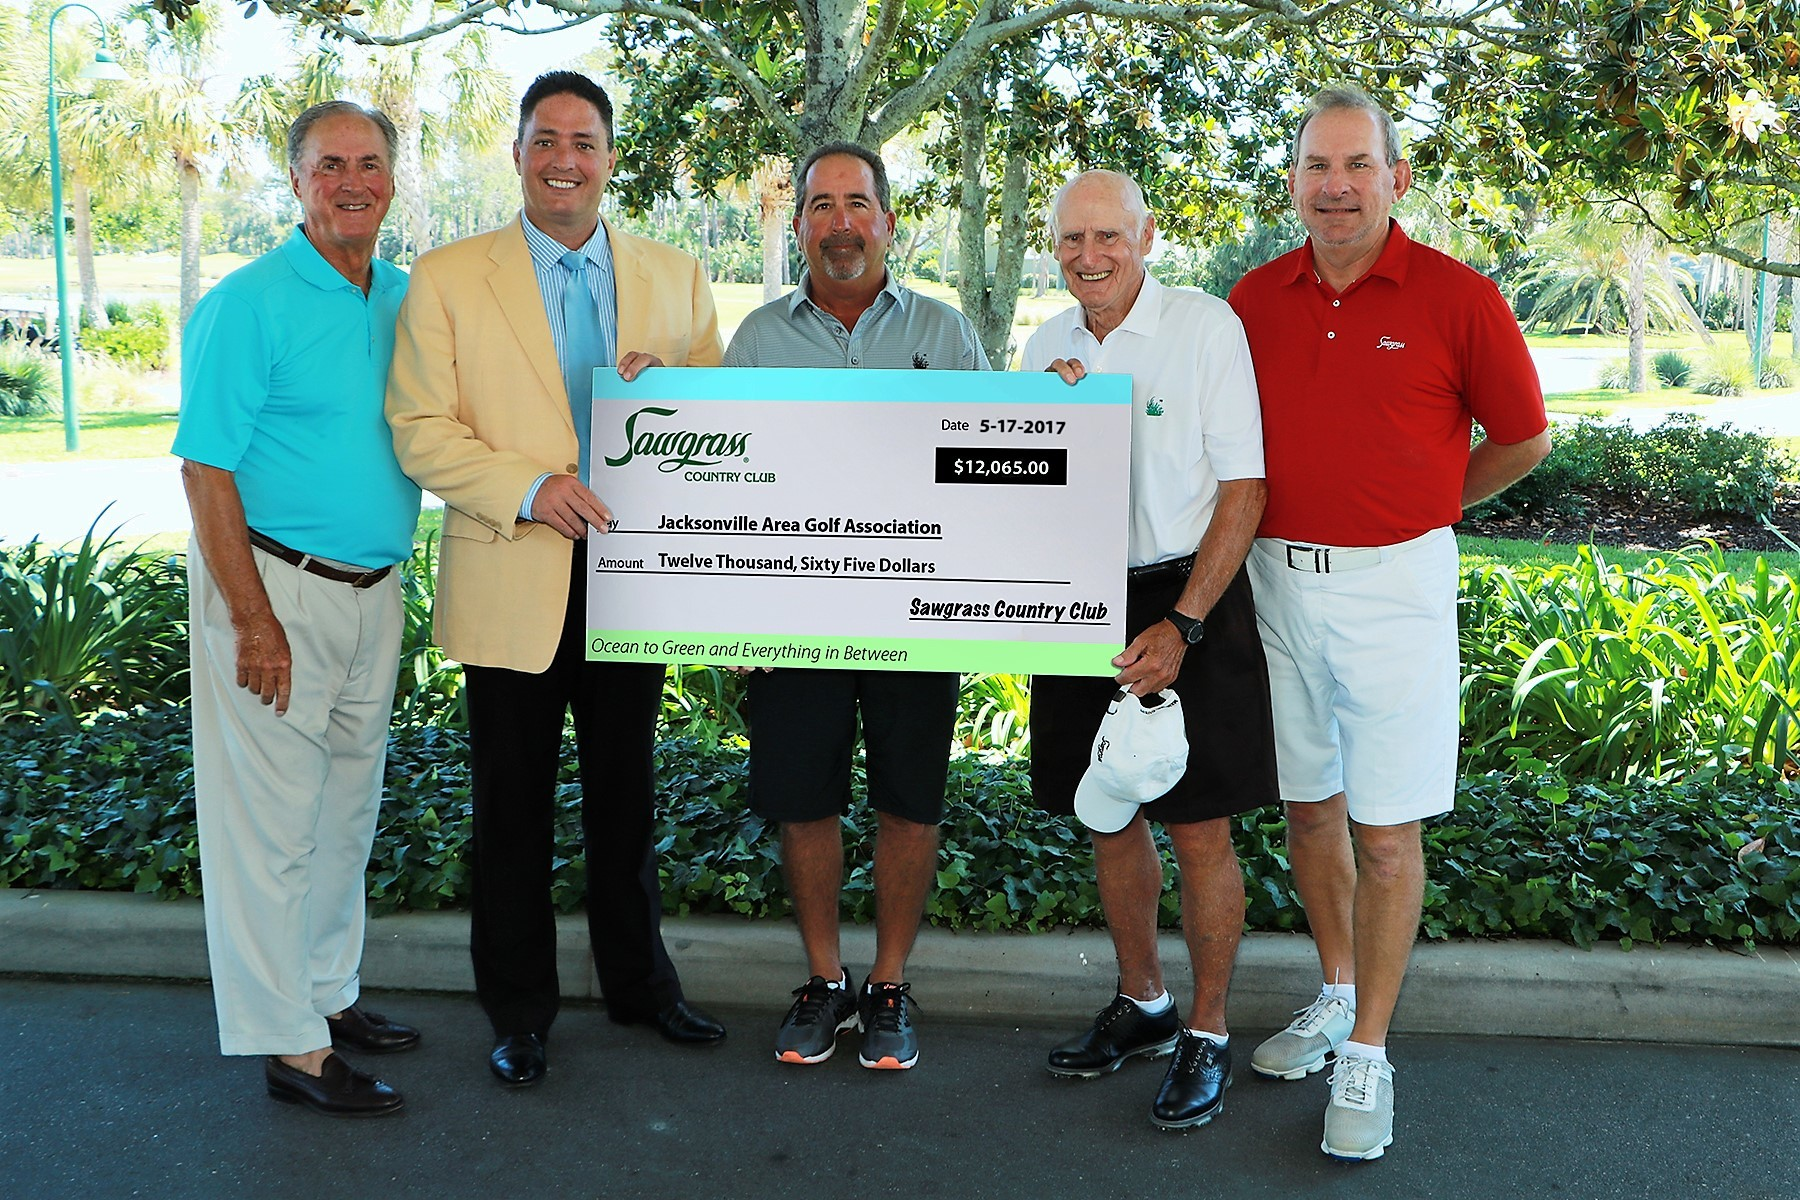 Leedom Kettell, president, Sawgrass Country Club Board of Governors; Barry McDonald, general manager and COO; and JAGA directors Randy Nader, Ray Gottschalk and Gregg Deiboldt.